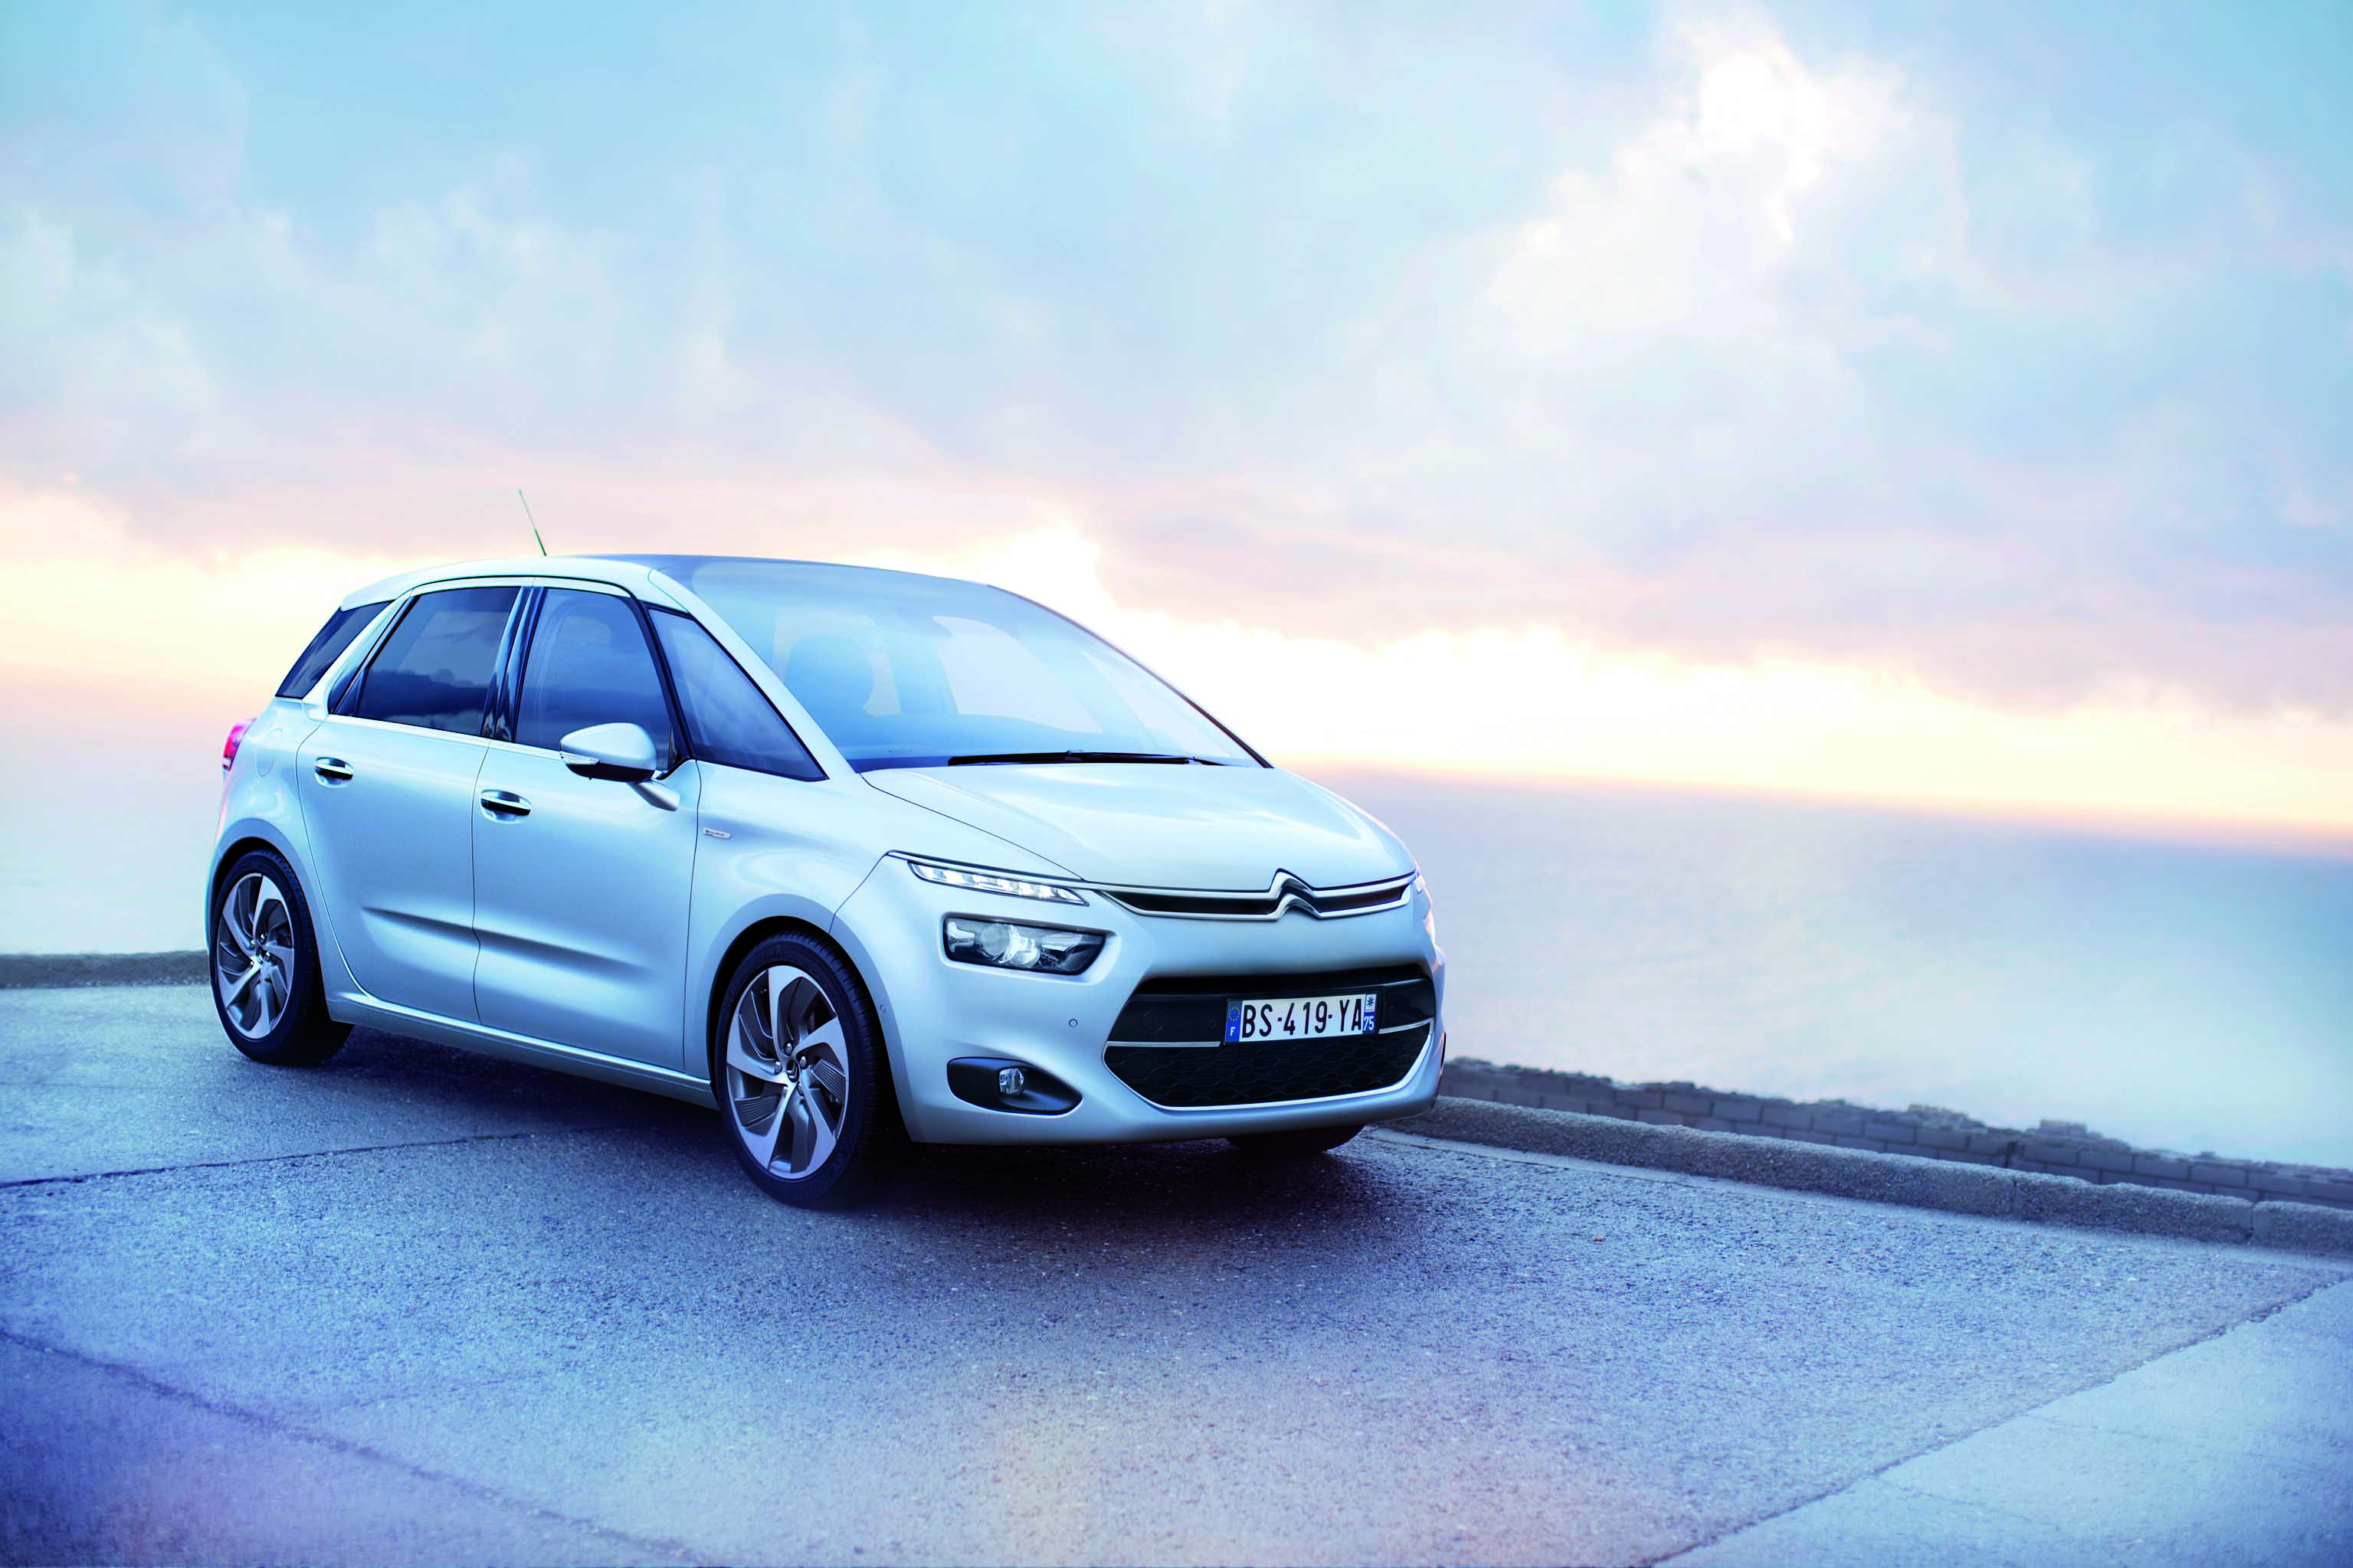 citroen-c4-picasso-2013-attraction-seduction-exklusive-intensive-01